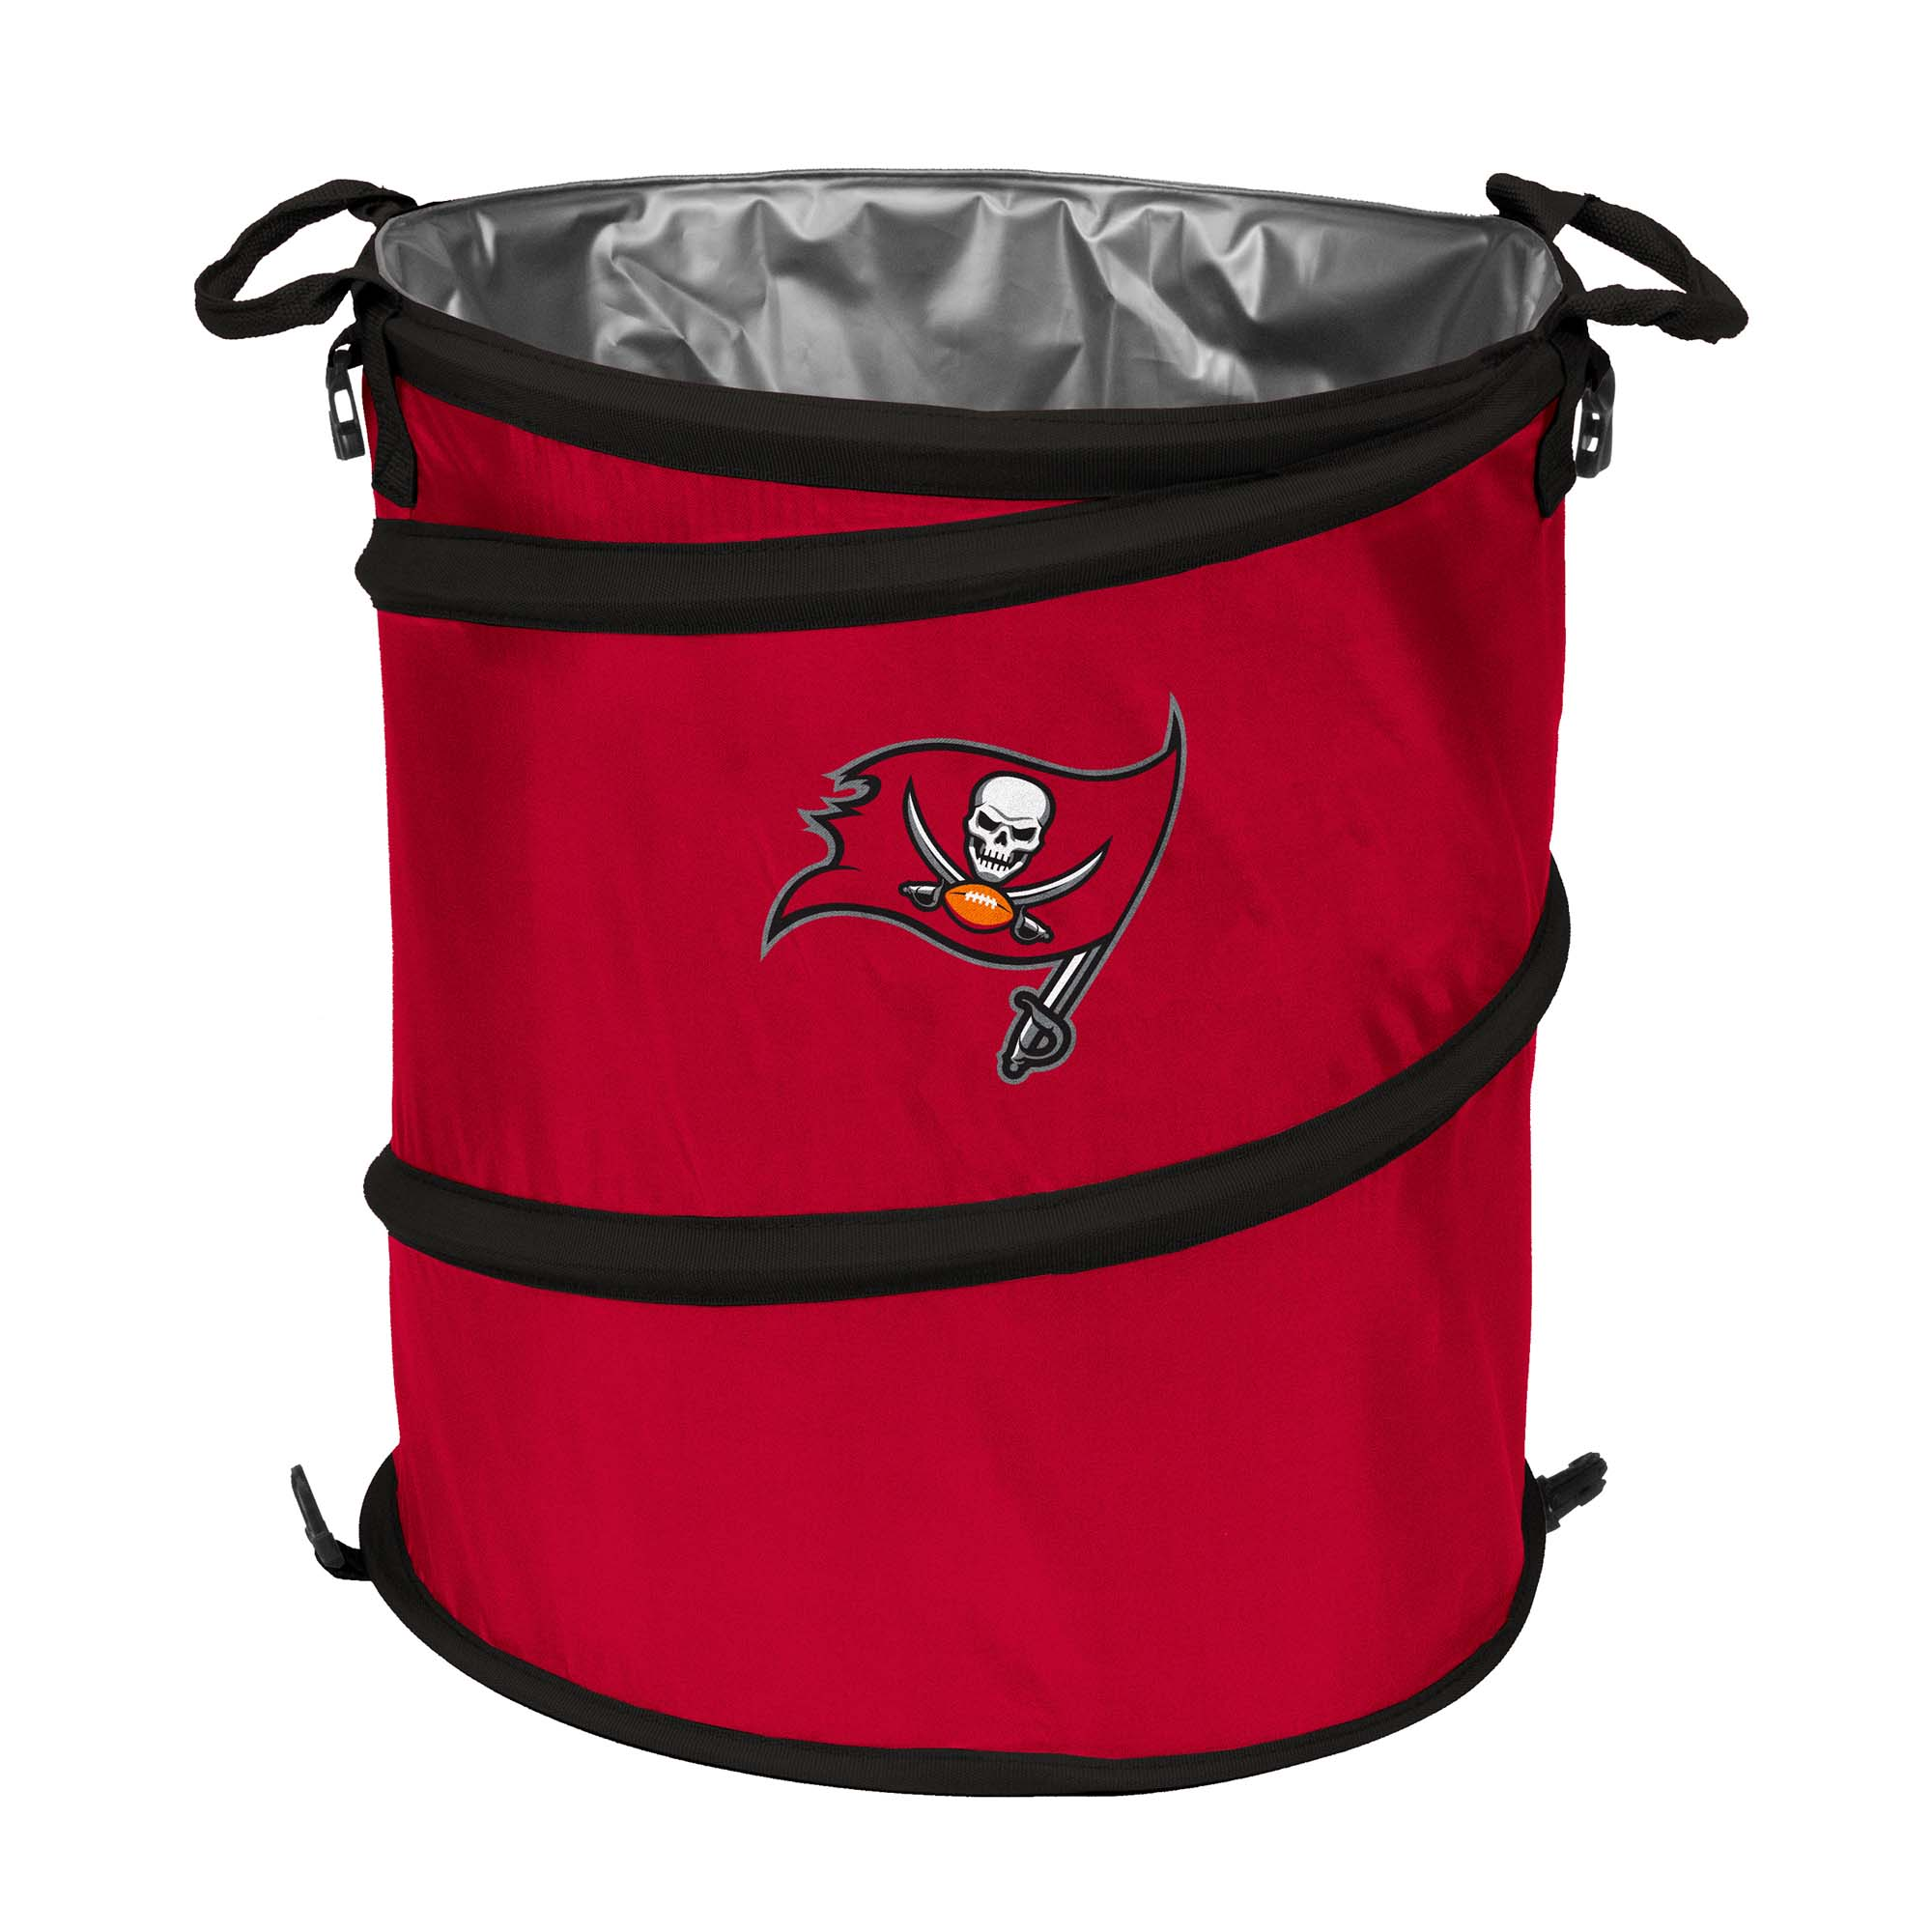 Tampa Bay Buccaneers Collapsible 3-in-1